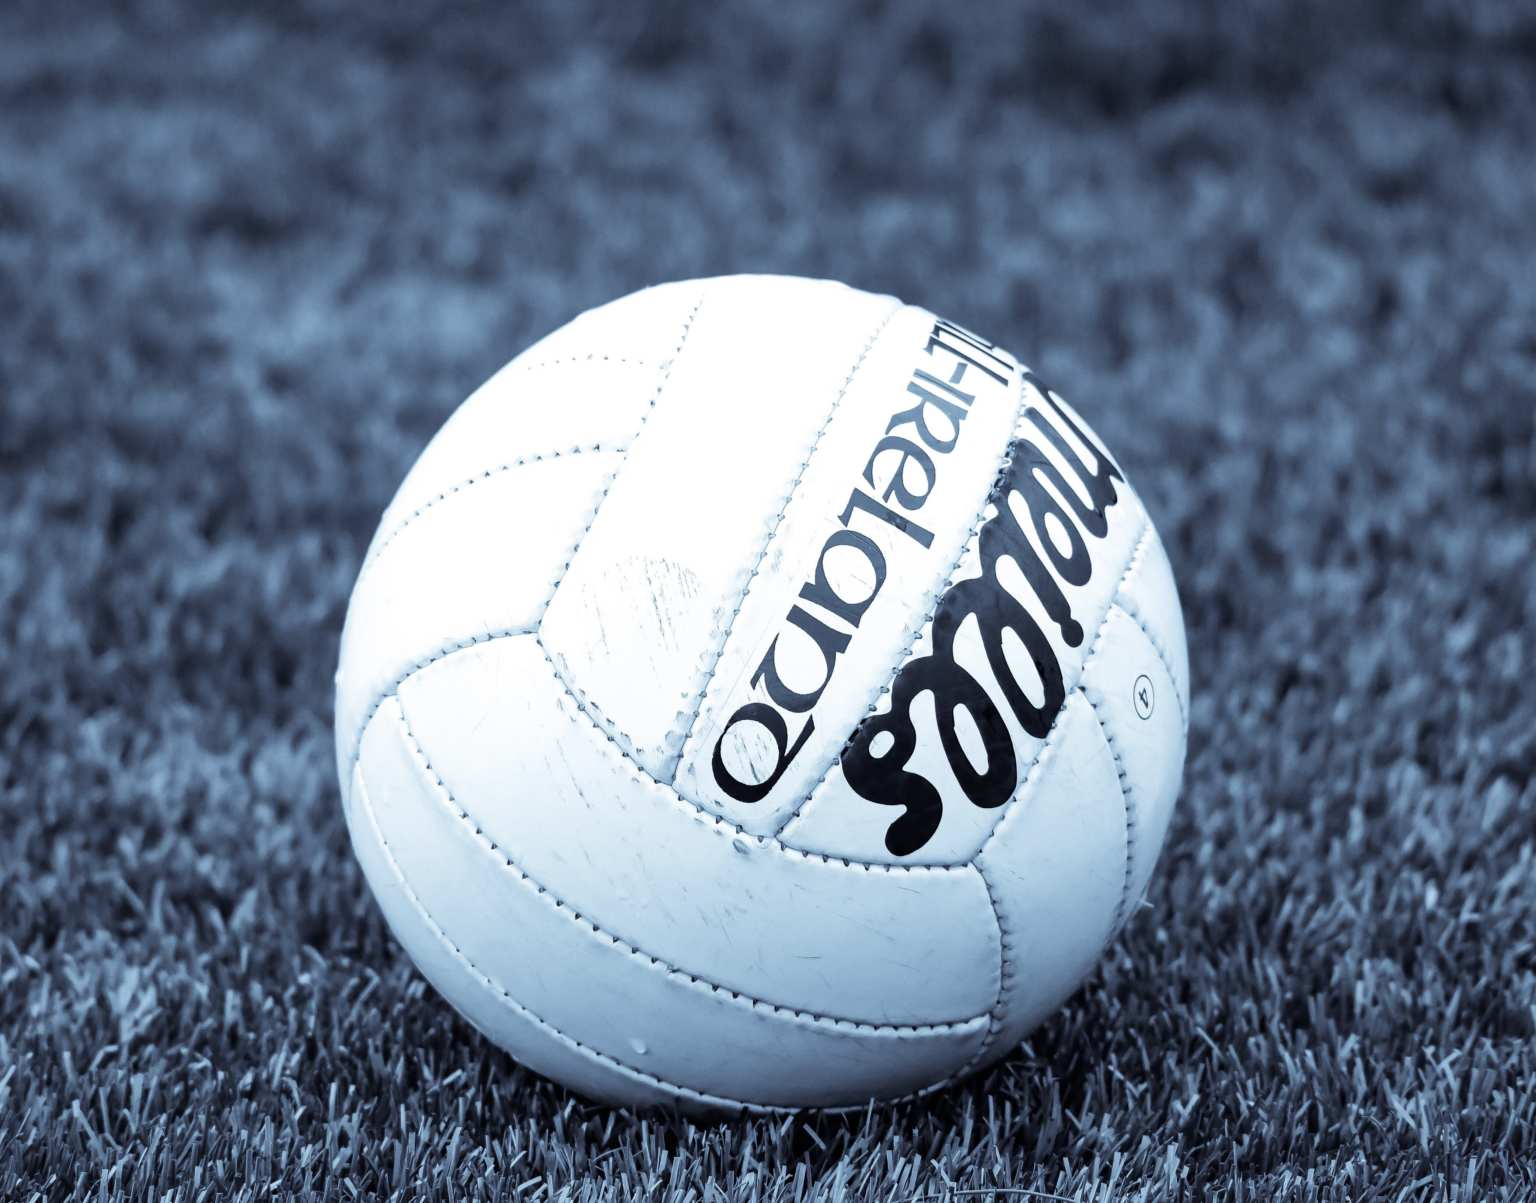 A Gaelic football on a pitch, new Gaelic football rules come into effect in 2020 including the advanced rule which will see forwards award a mark for a clean catch of the ball from a kick pass that travels over 20m without touching the ground